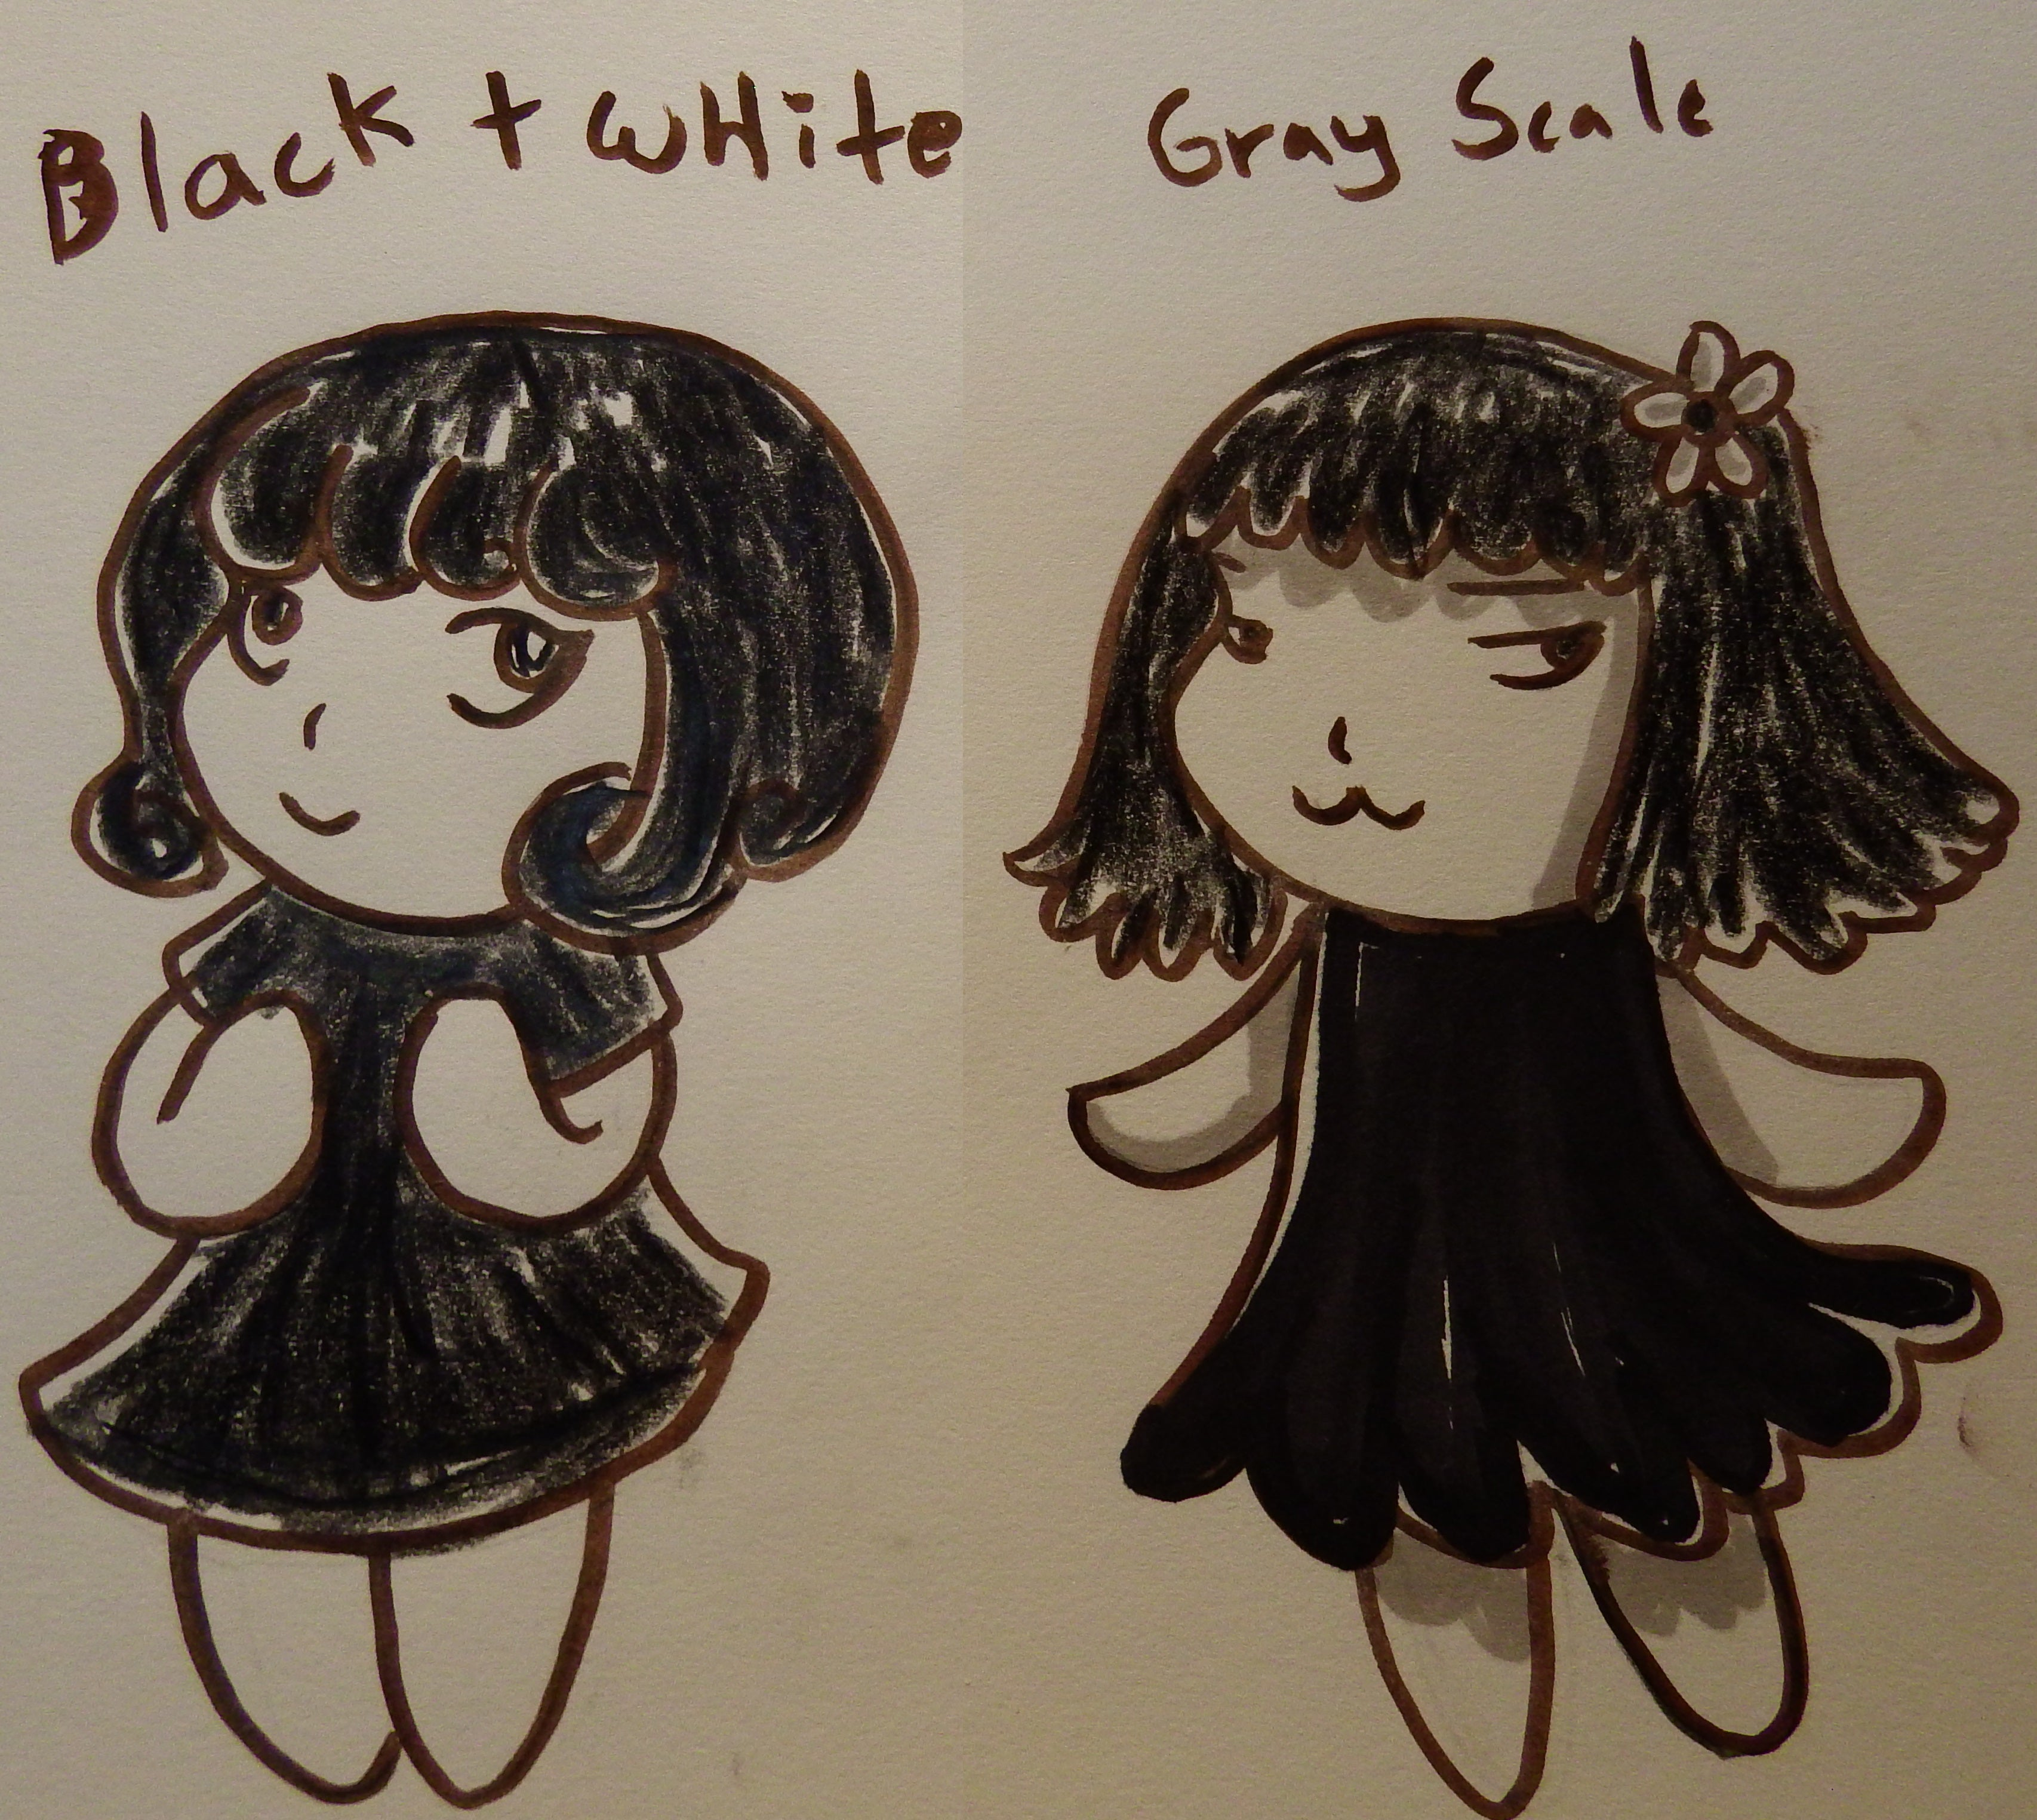 color theory, black and white vs grayscale, artsy sister